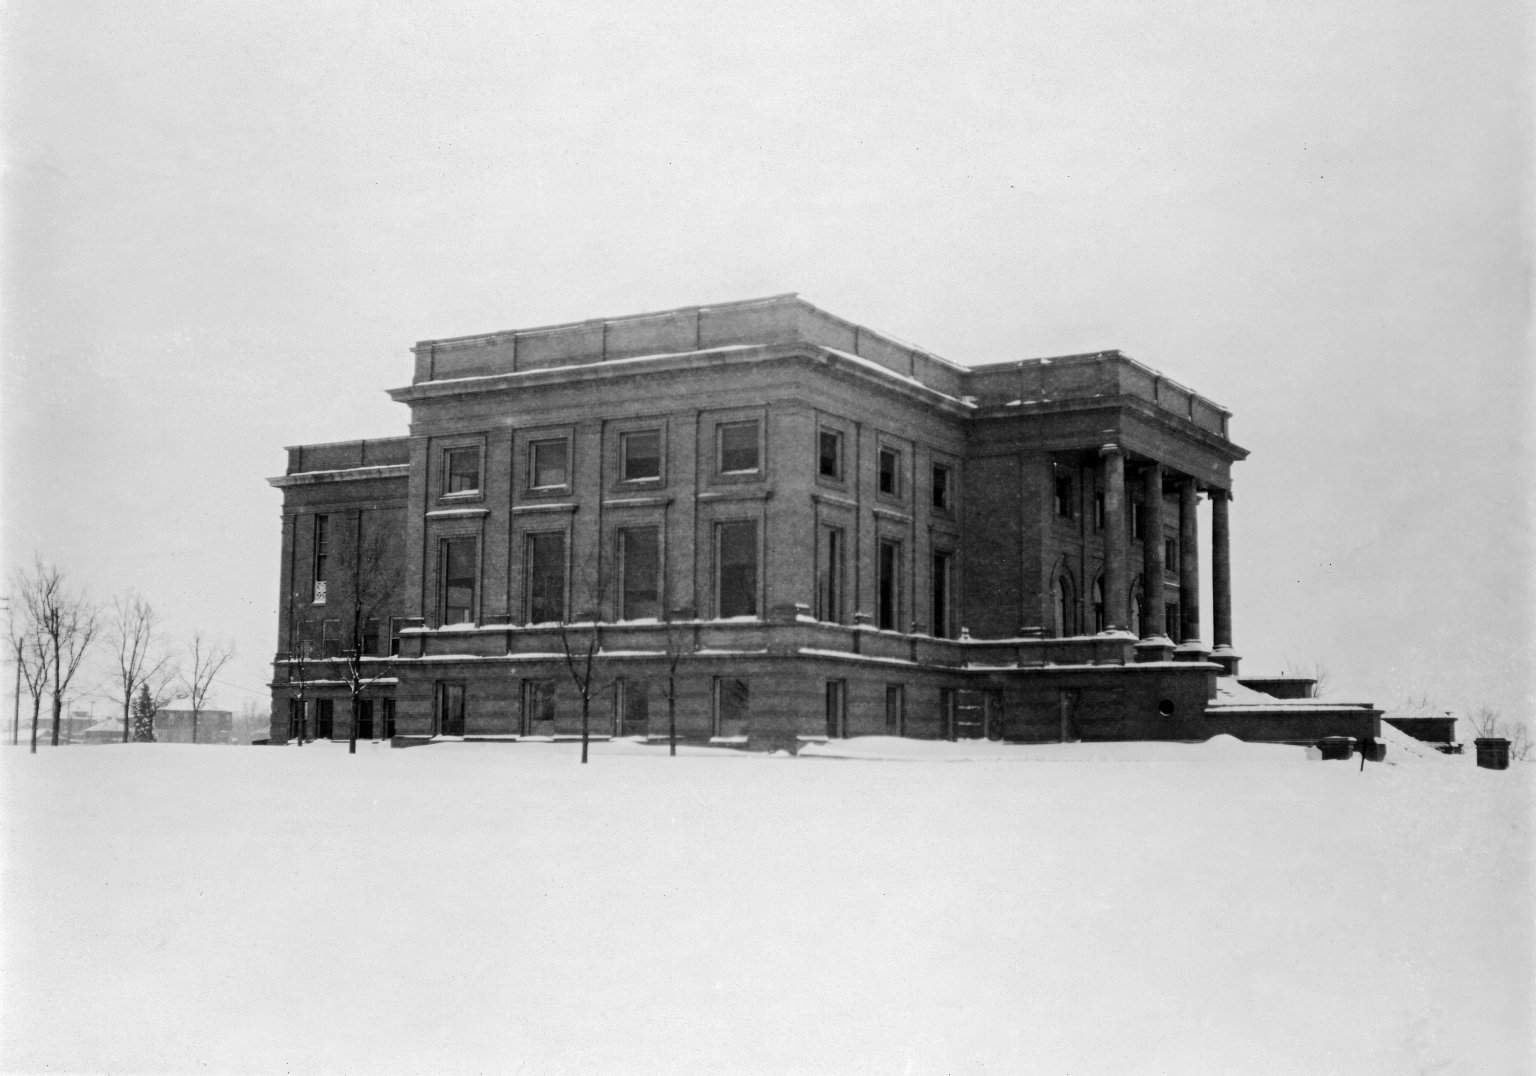 Winter scene of the Colorado Museum of Natural History building.